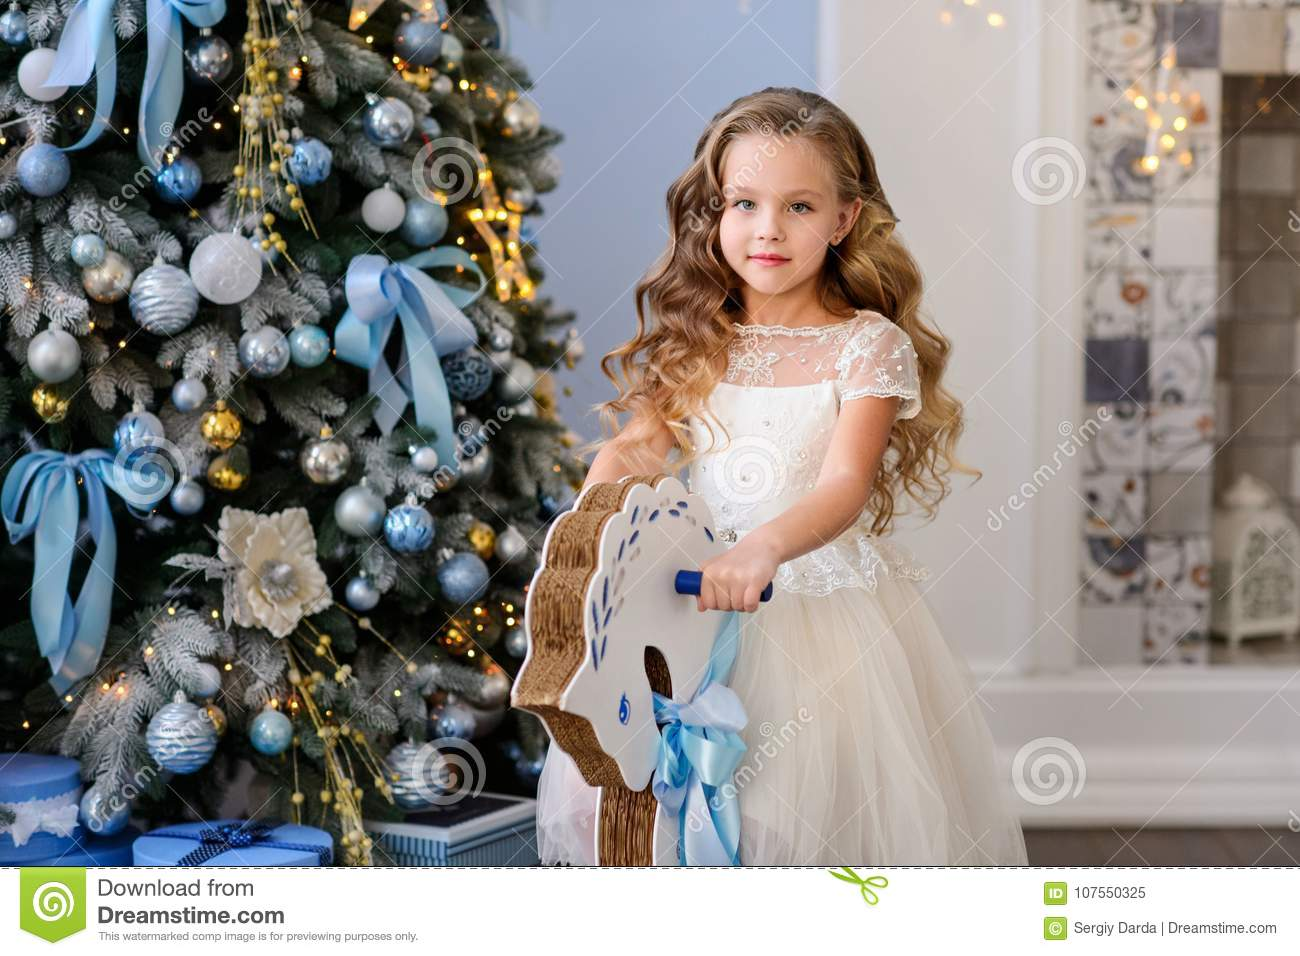 Beautiful little girl in a amazing dress